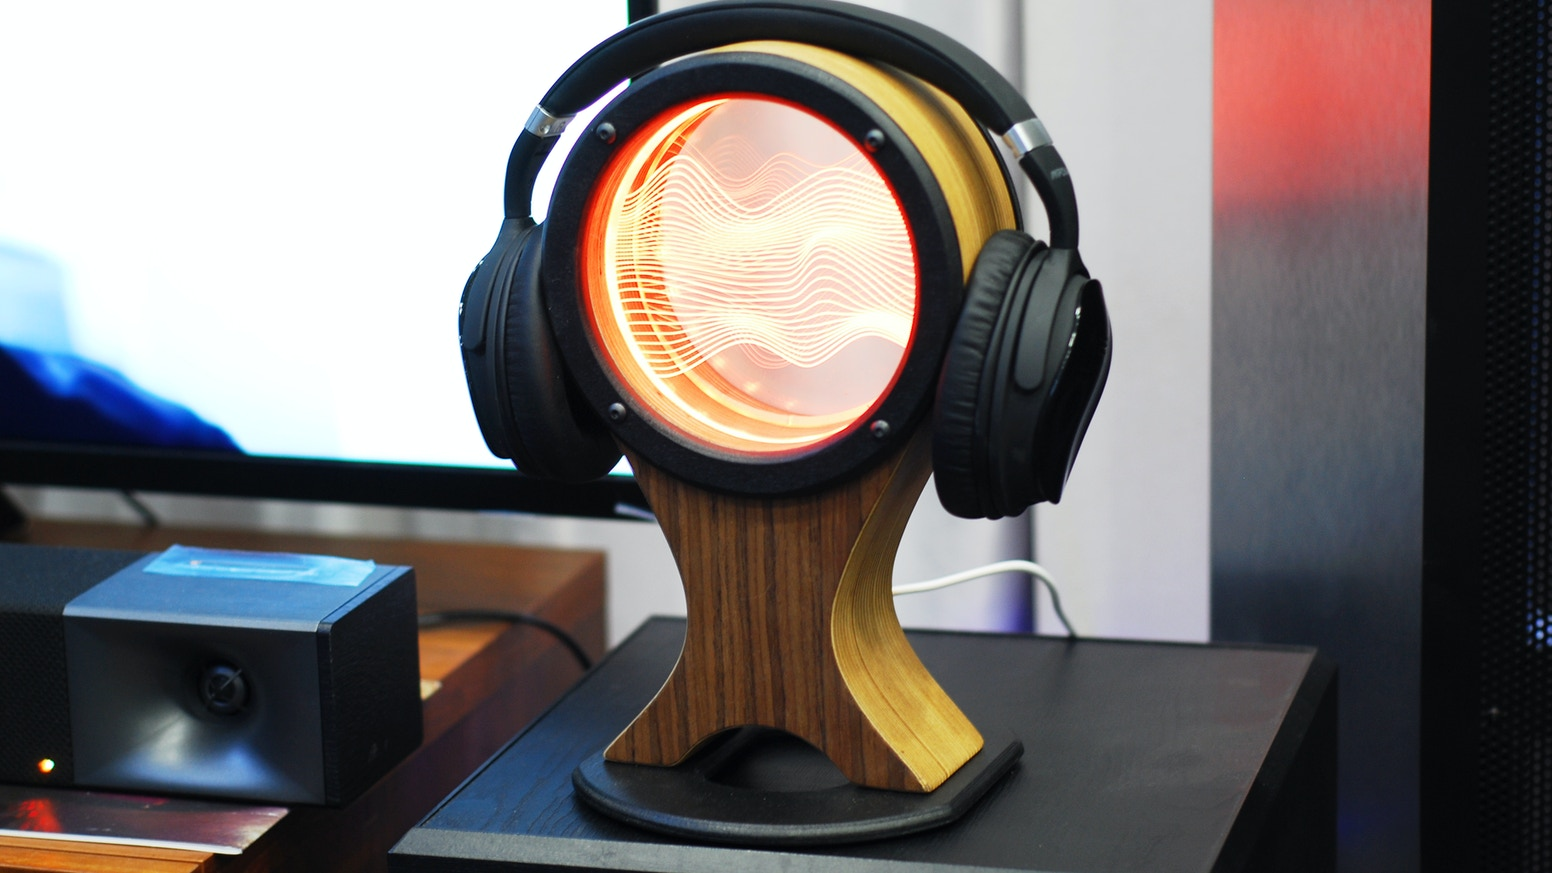 A headphone stand that stands out with light